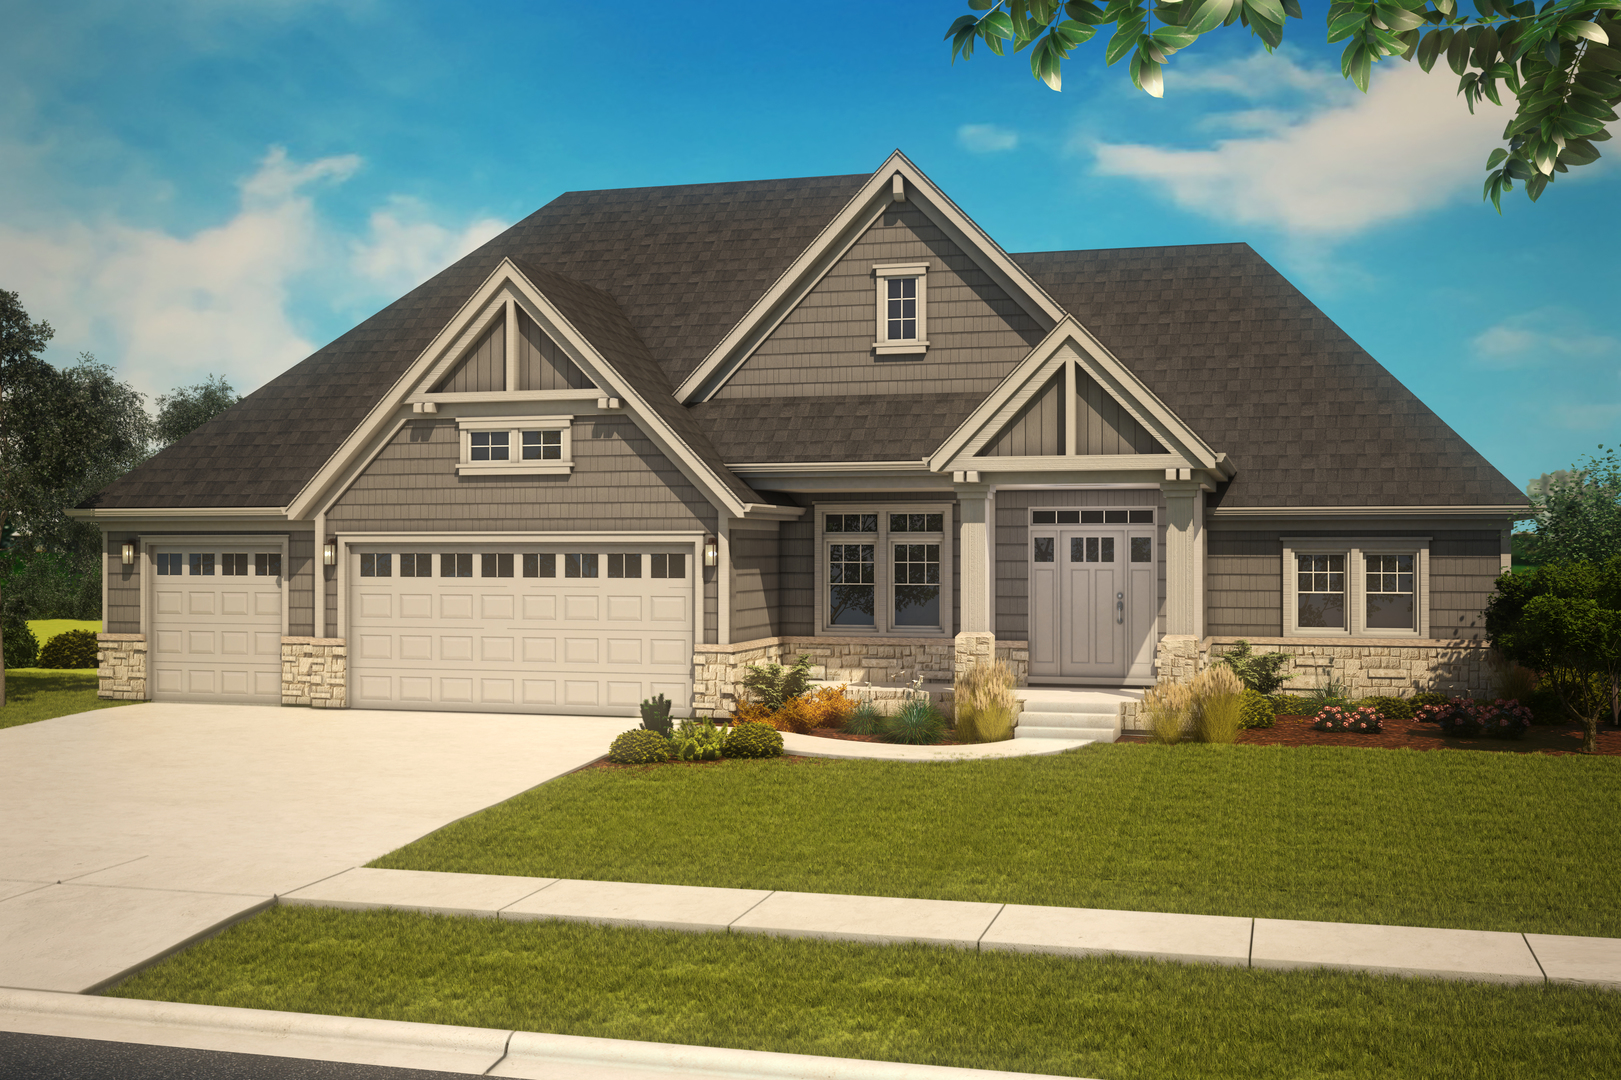 Ashwood park in naperville il homes for sale ashwood for Ashwood homes